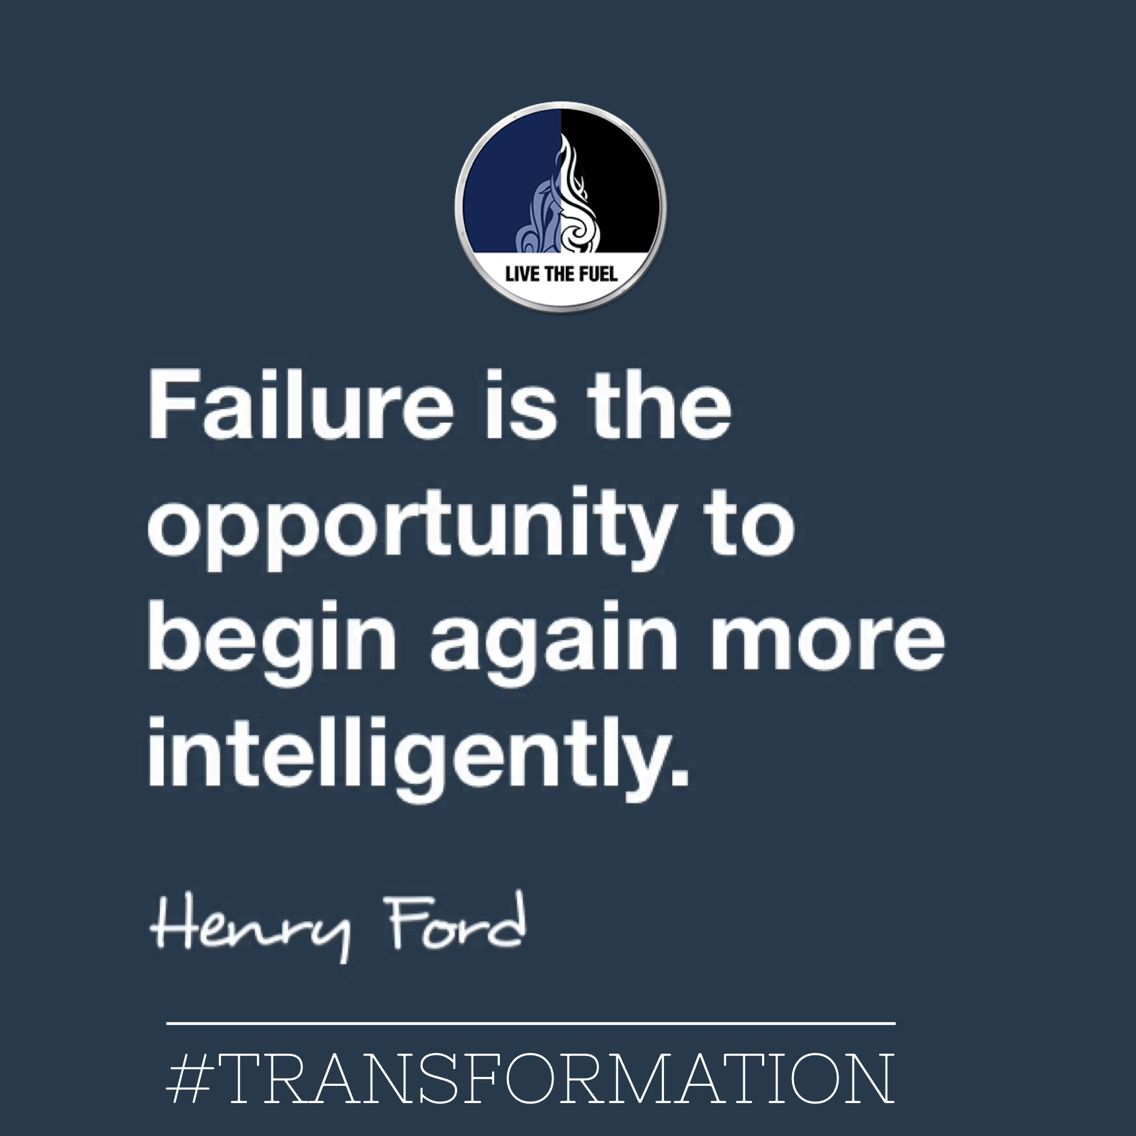 Quotes About The Future And Success: Embrace Change And You Will Succeed. Failure Breeds New